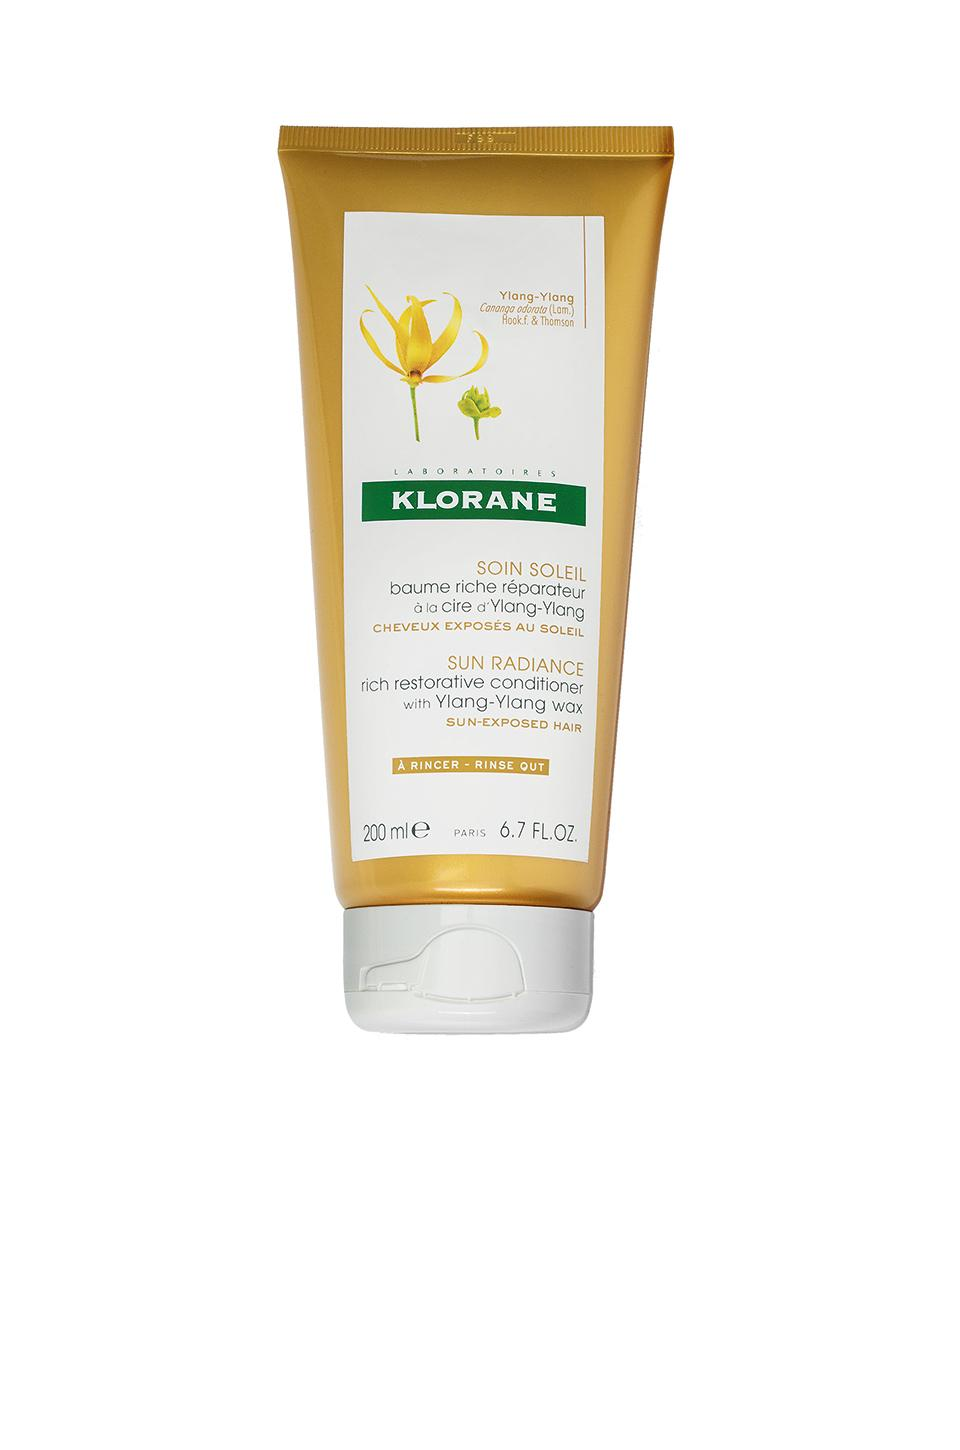 Klorane Restorative Conditioner With Ylang-ylang In N,a